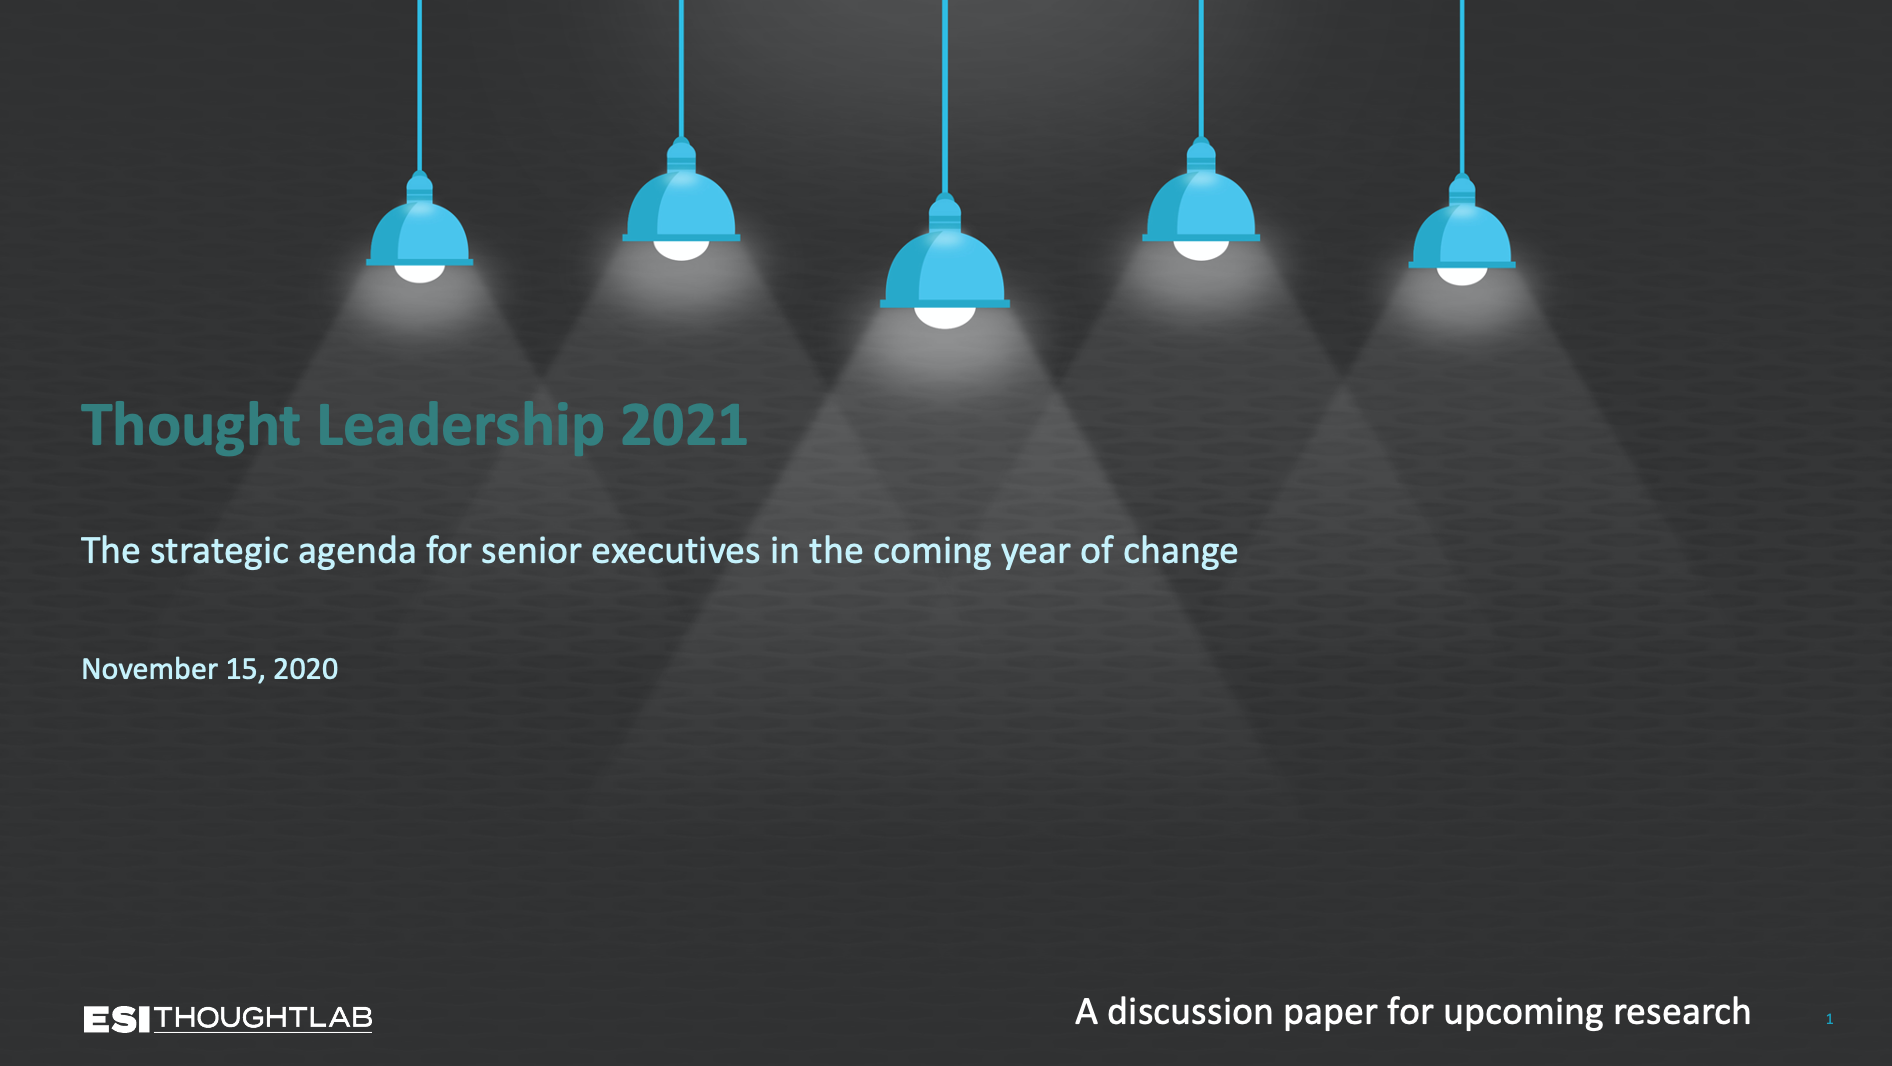 Thought Leadership 2021